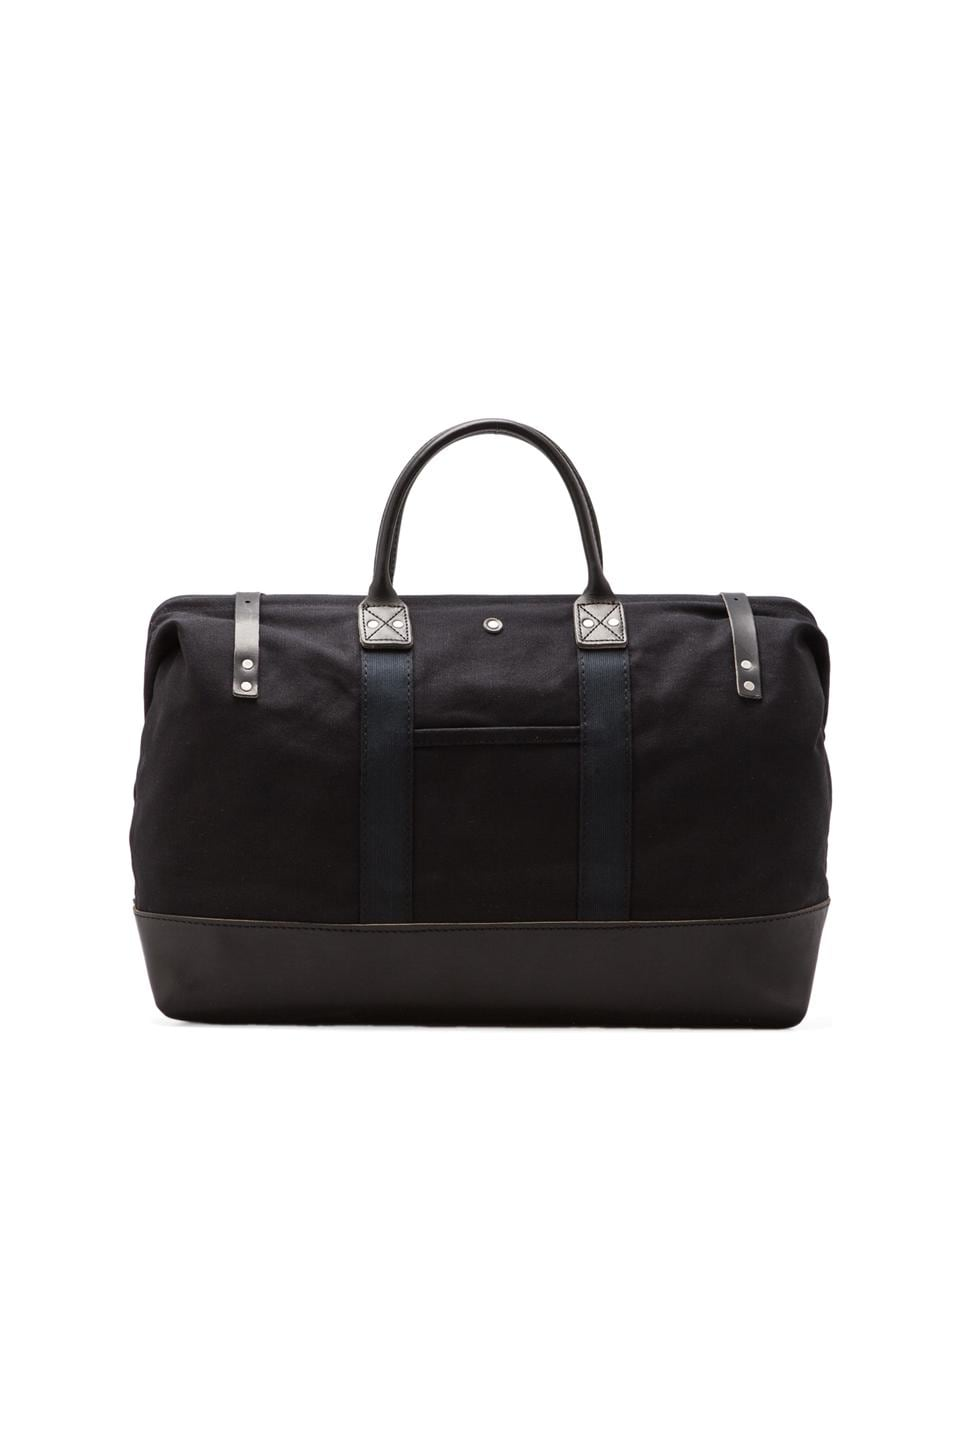 Billykirk No. 166 Large Carryall in Black